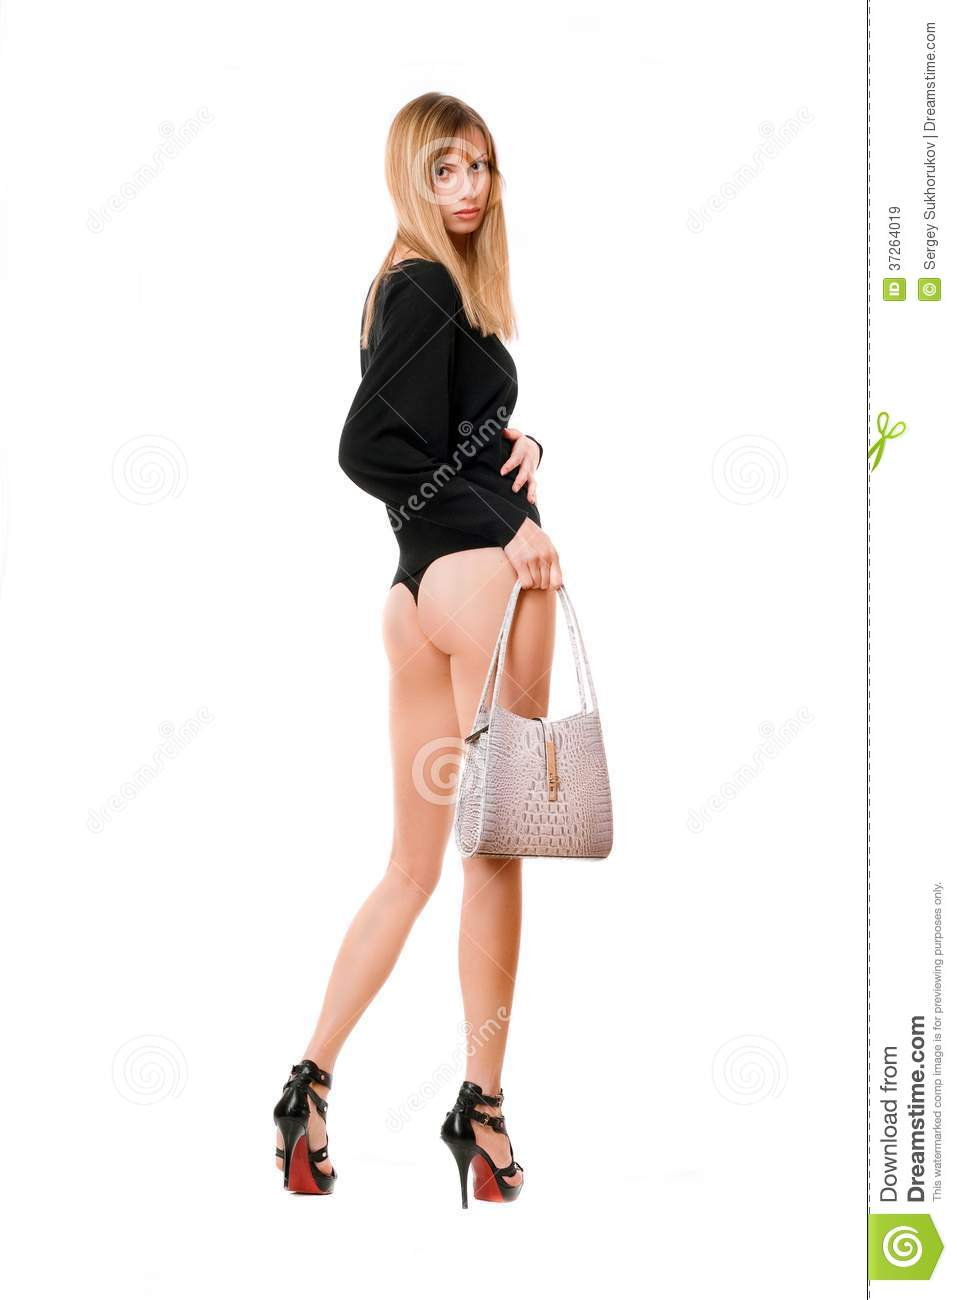 Blonde woman with the white purse